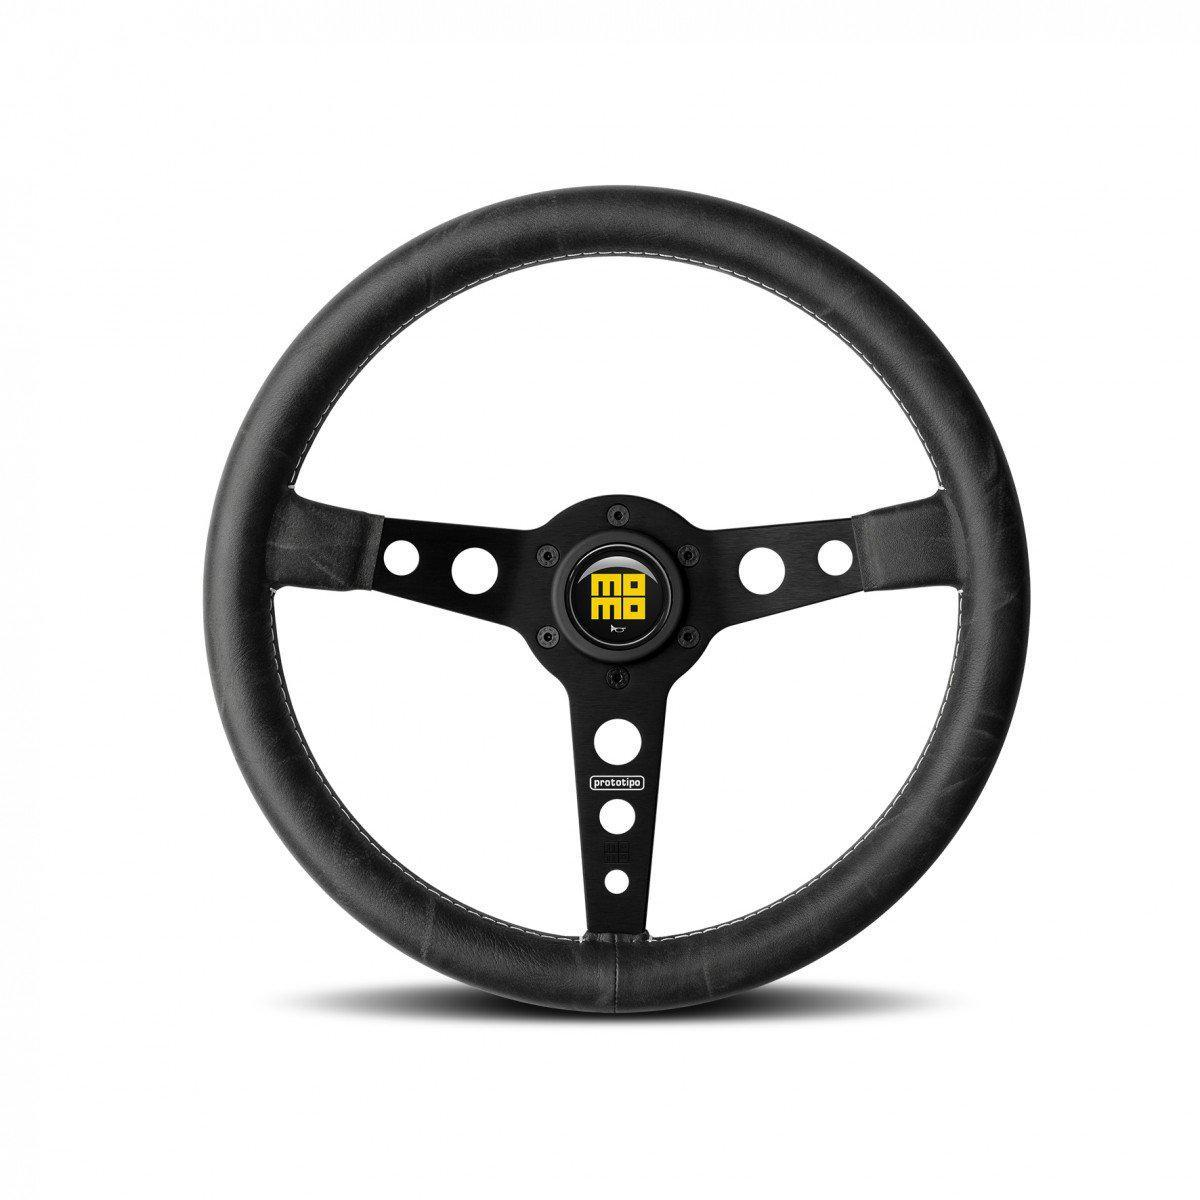 MOMO Prototipo Heritage - Black/Black 350mm Street Steering Wheel FAF Automotive